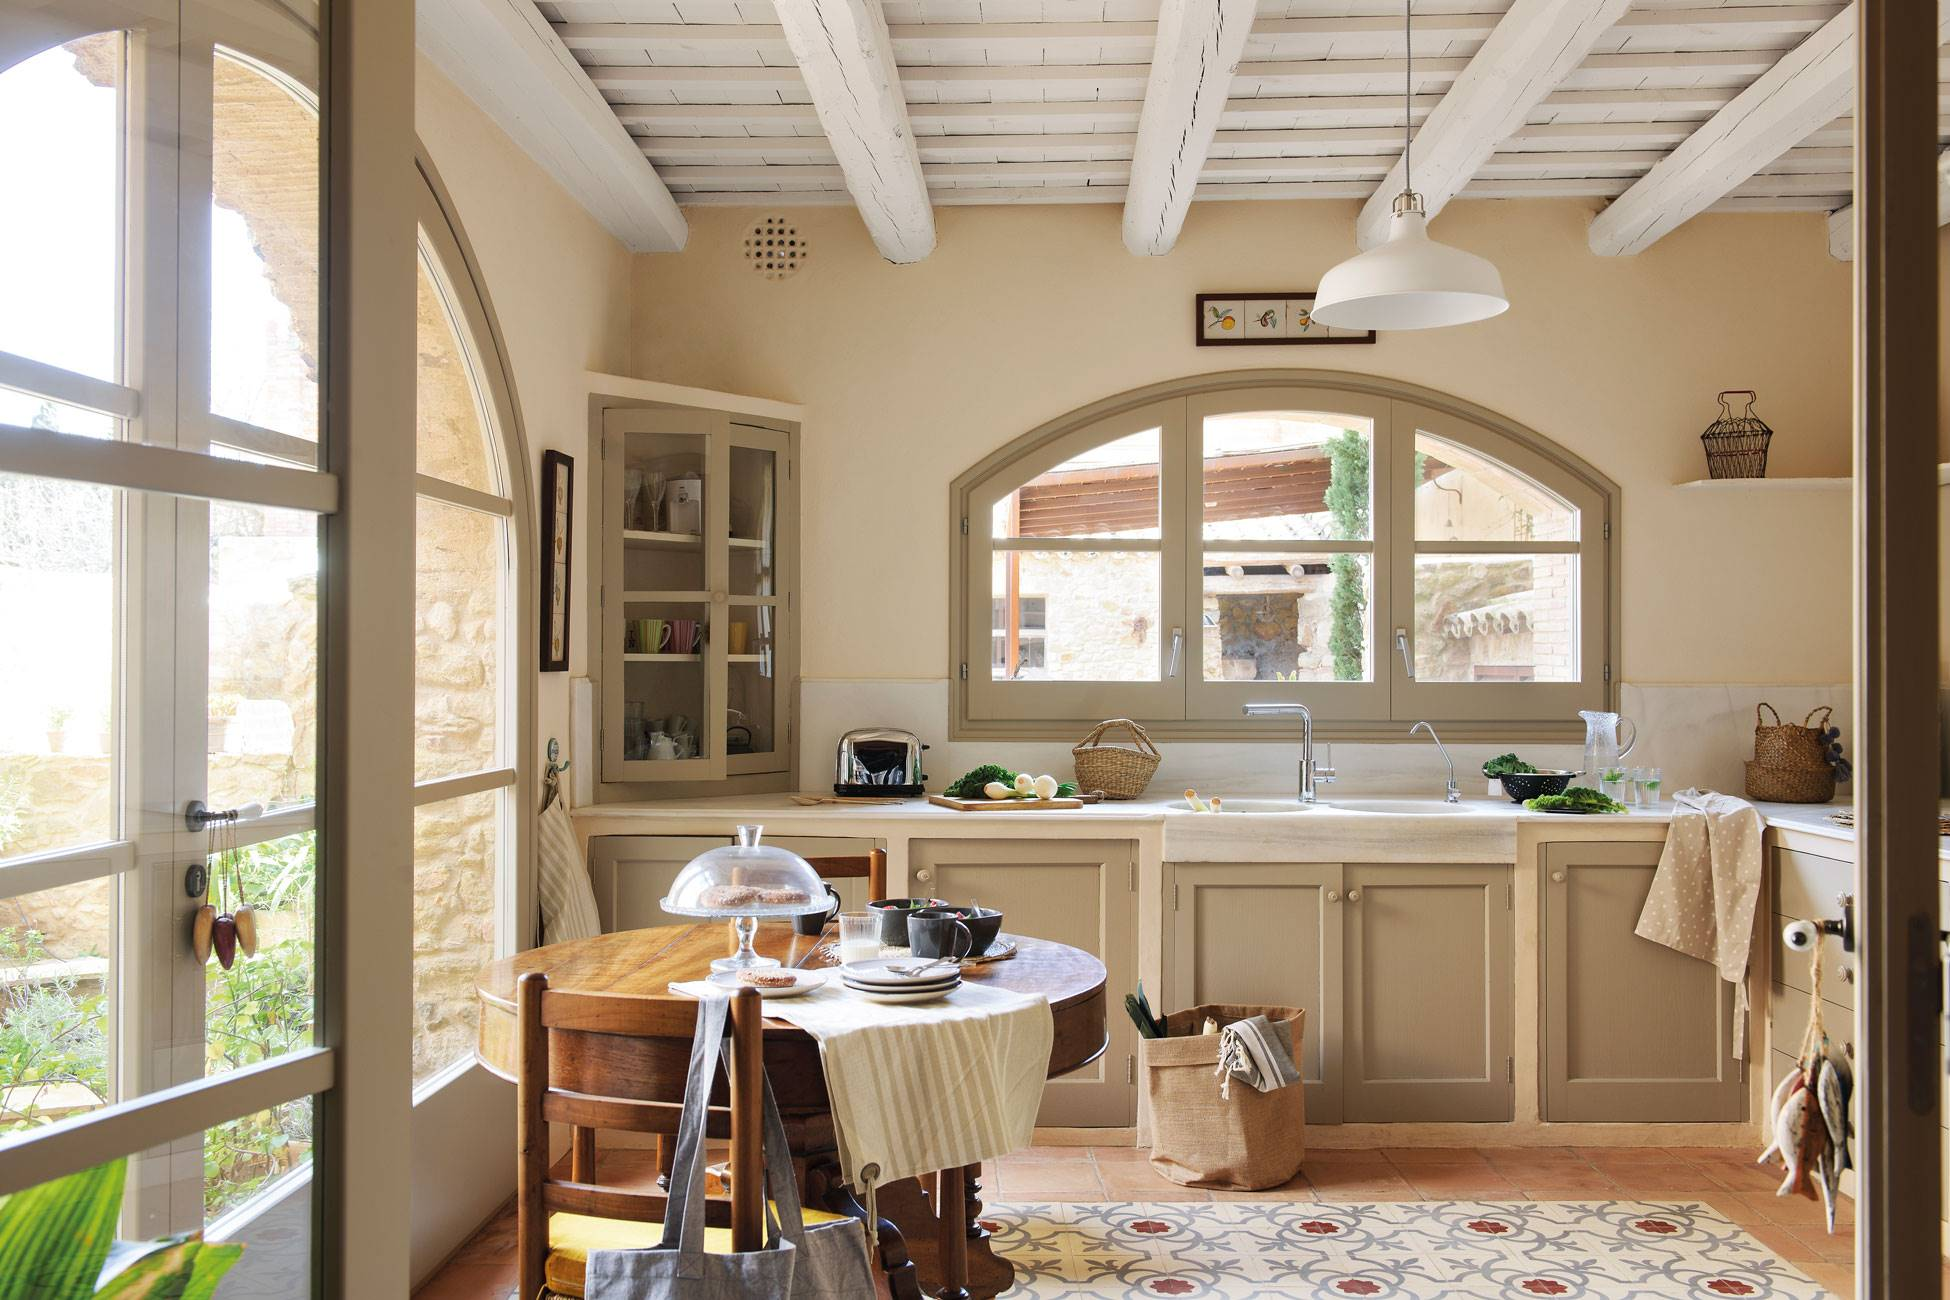 kitchen-rustic-style-and-shades-green-and-toasted 483451. Rustic soul